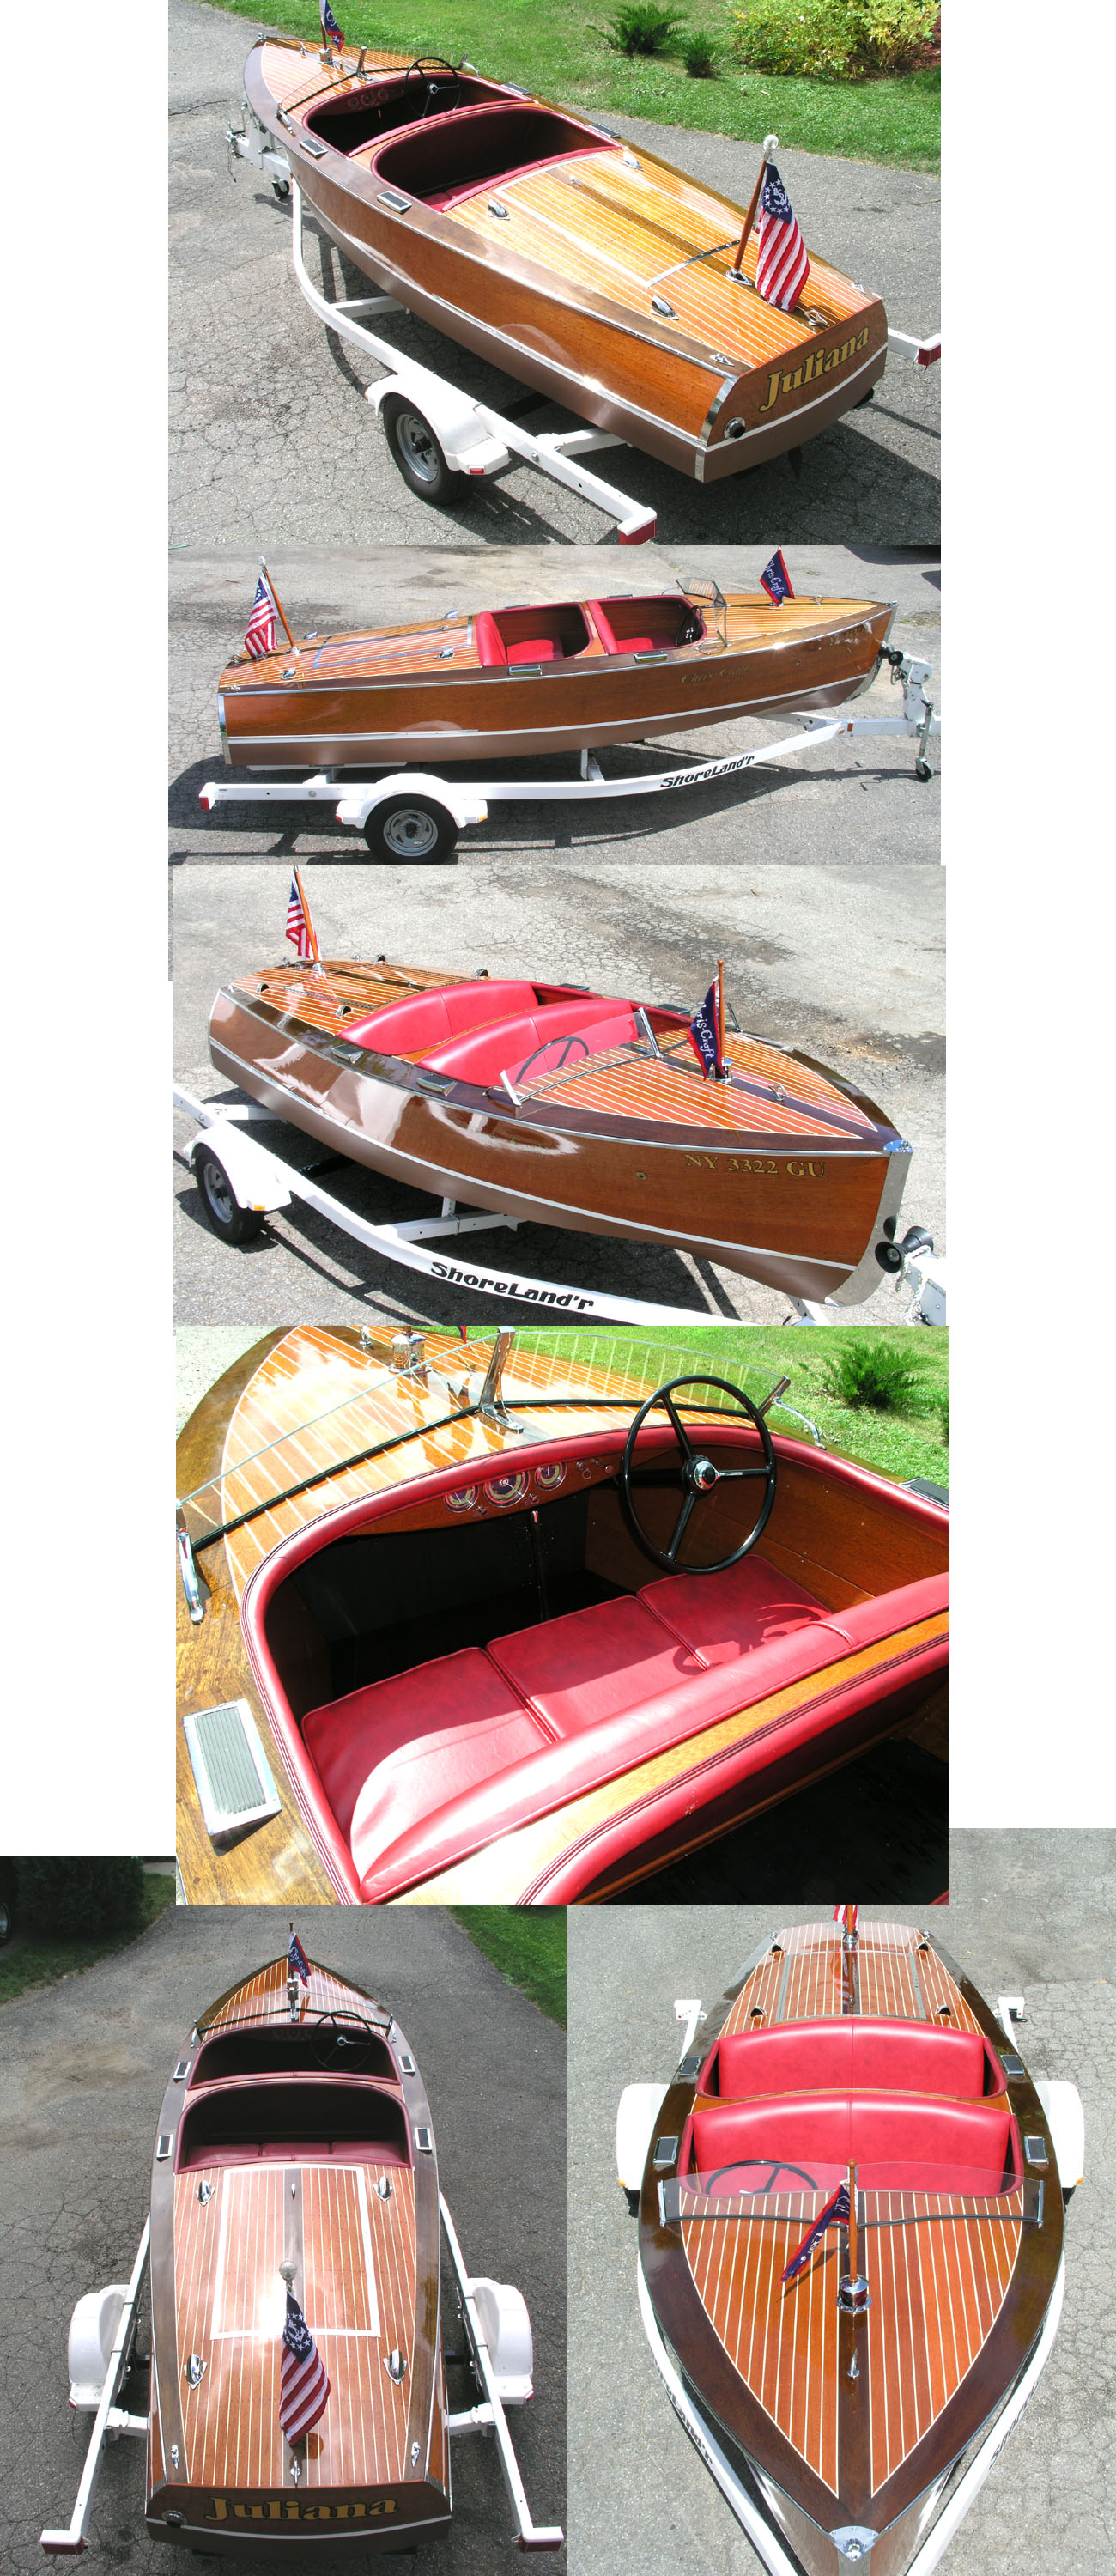 1942 17' Chris Craft Deluxe Runabout